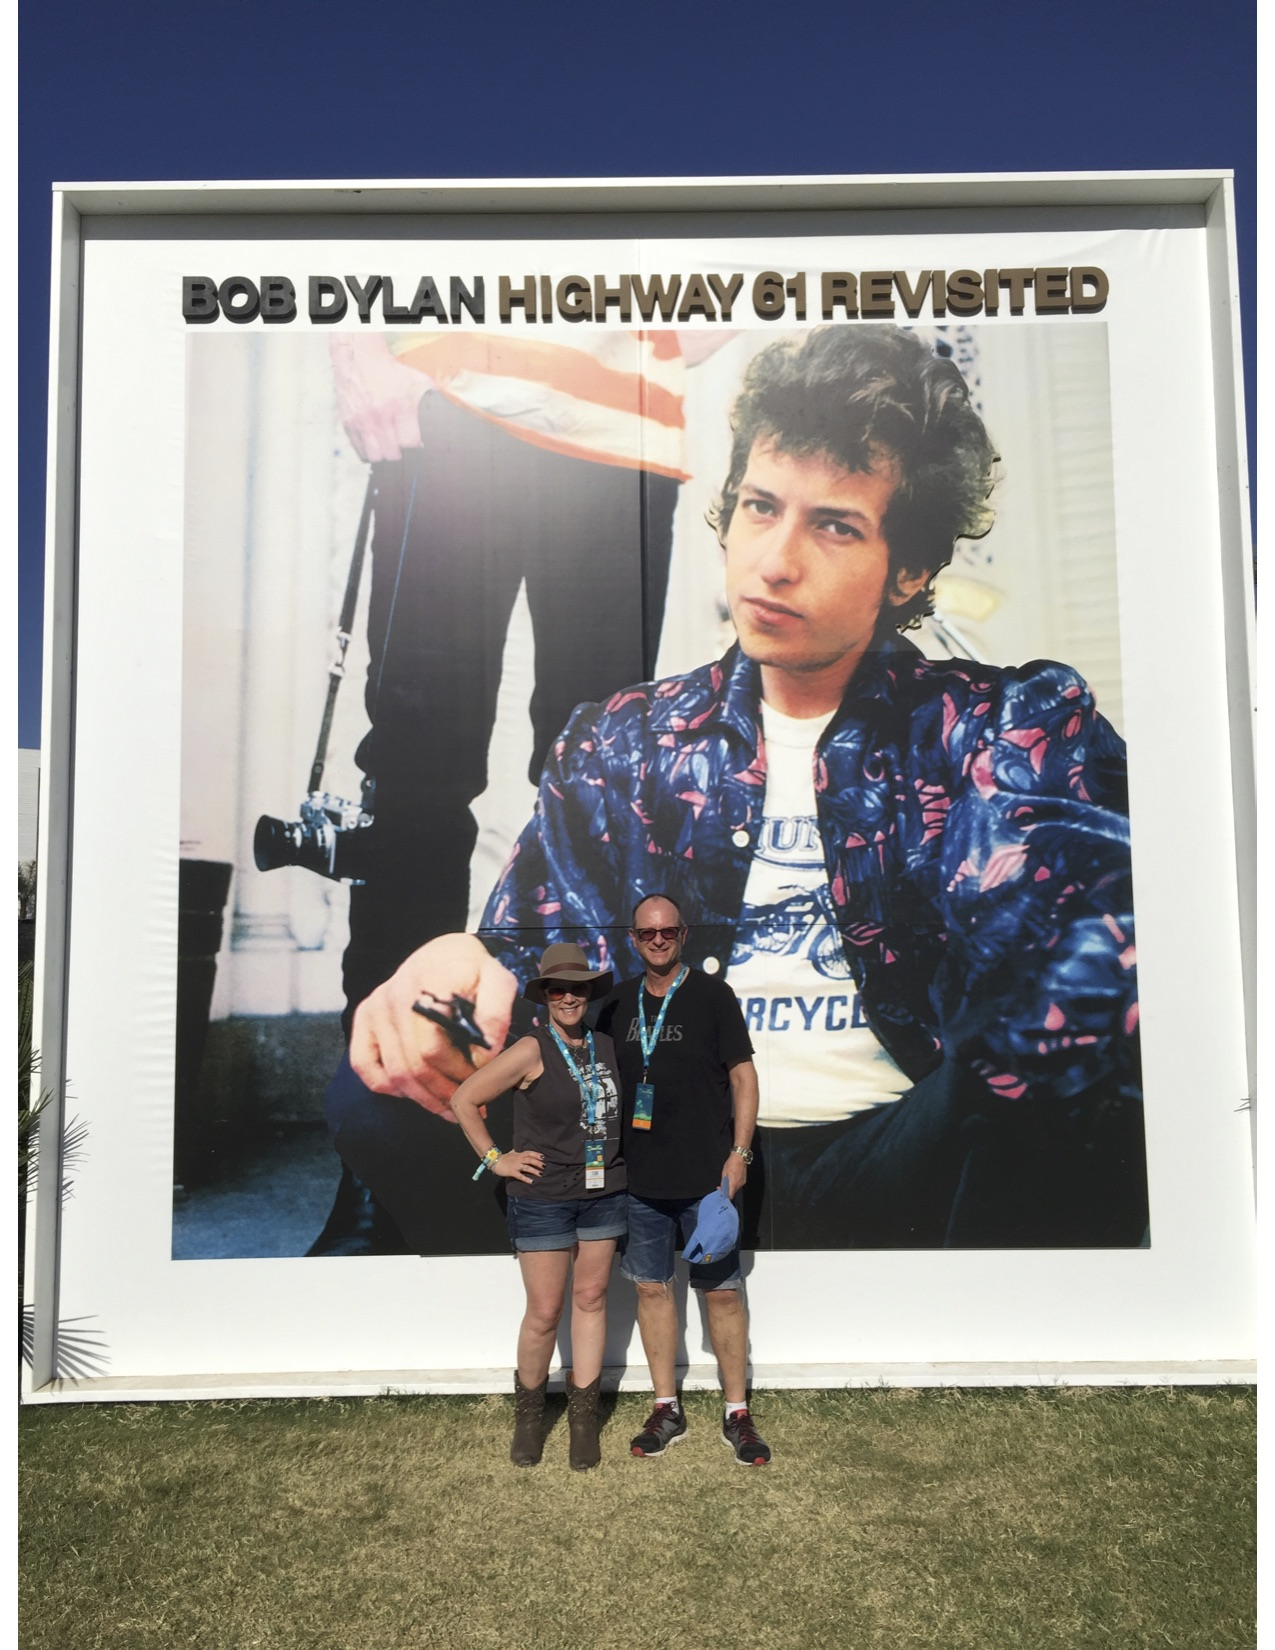 How does it feel; to be on your own; like a complete unknown; like a rolling stone? Bradley & I in front of the Bob Dylan LP out in the field.